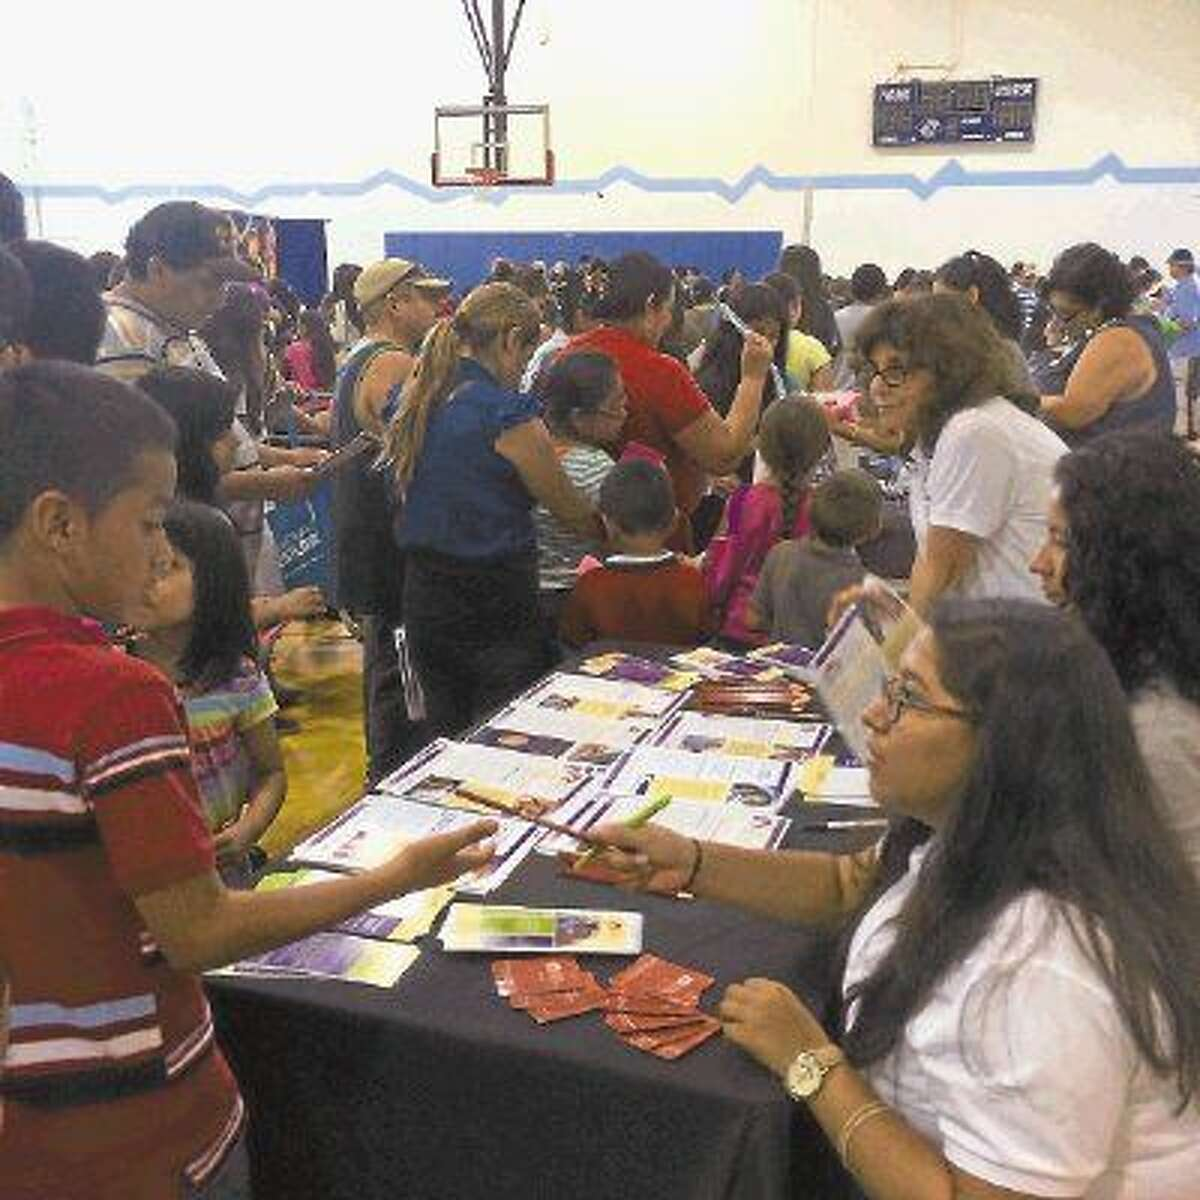 Families learned about different community services and organizations, like Family Houston, that will help them achieve success.